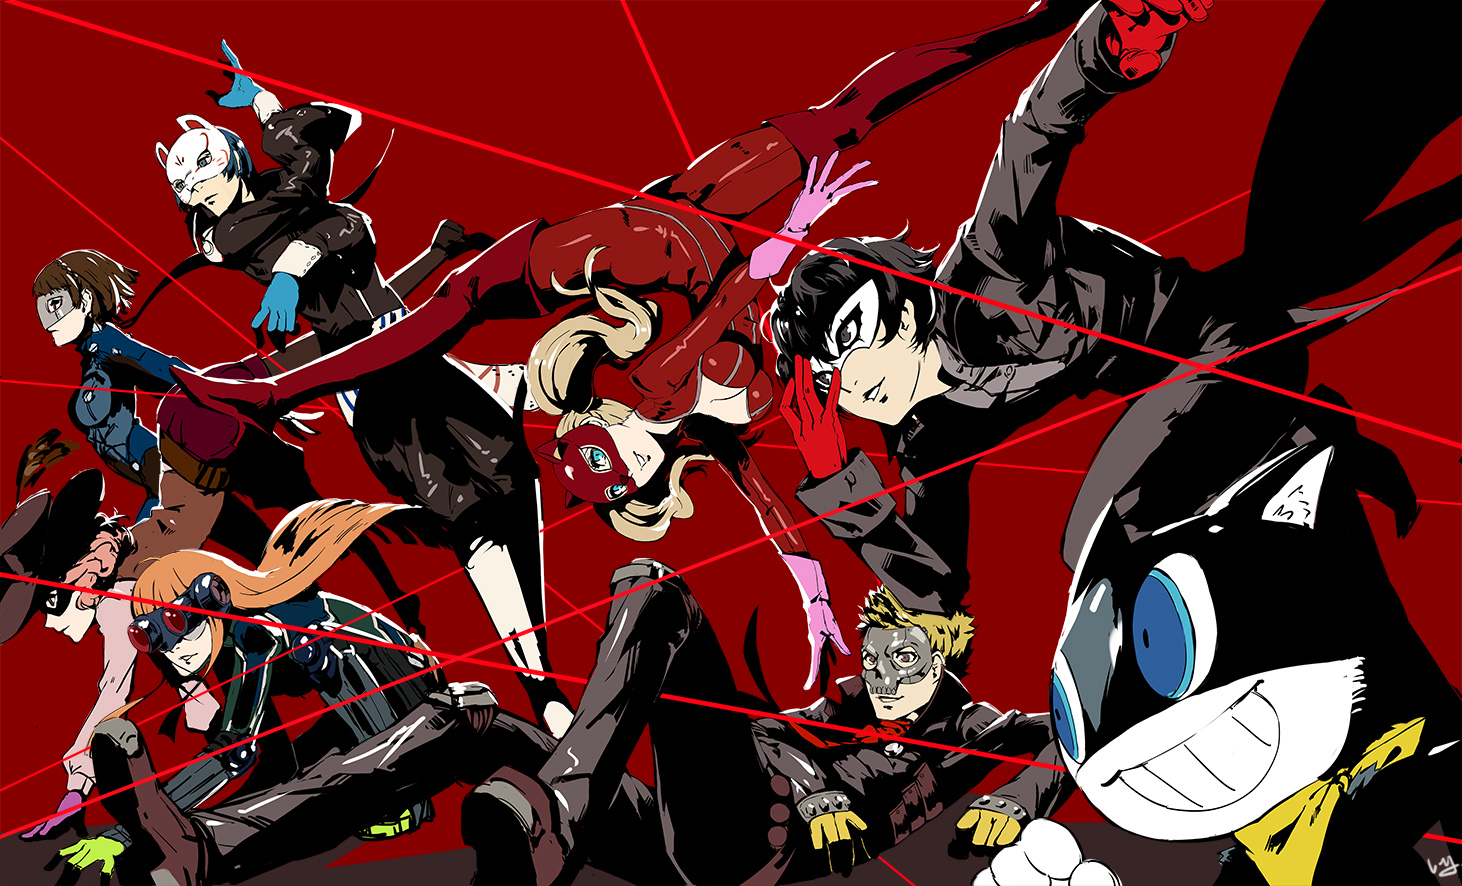 Persona 5 Earn Unlimited Cash Quick With This Money Farming Trick